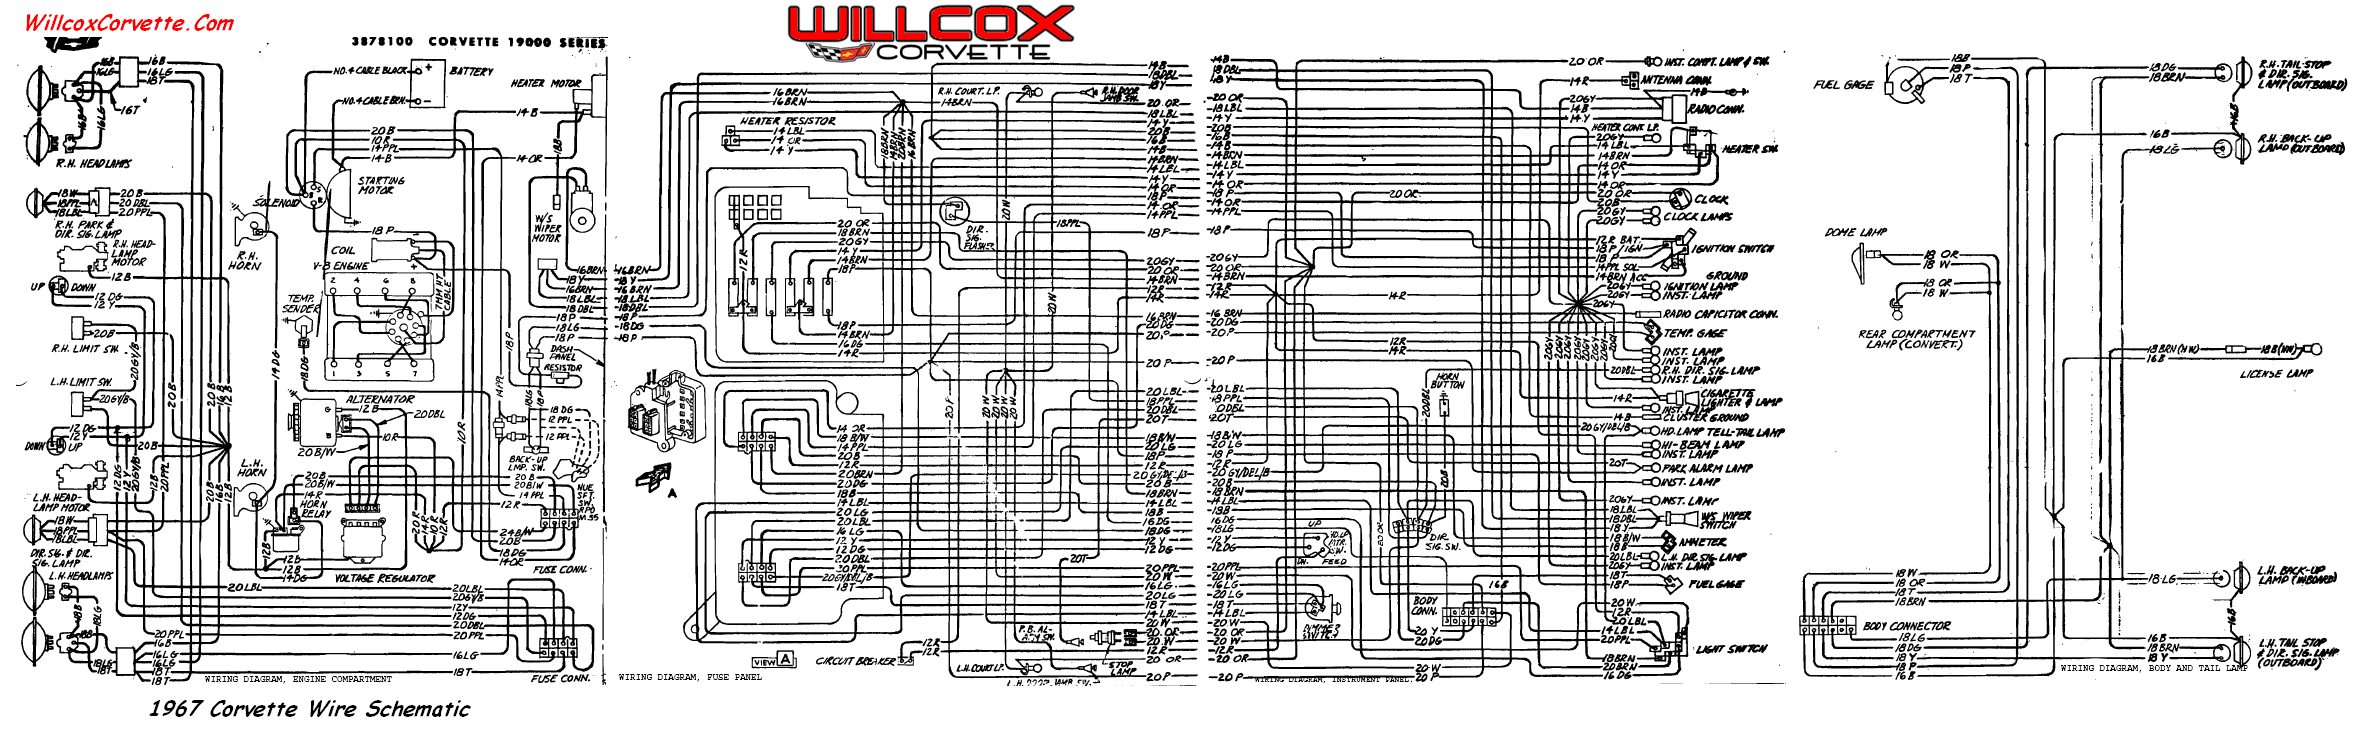 67 wire schematic for tracing wires 1967 corvette wiring diagram (tracer schematic) willcox corvette 1971 corvette wiring diagram at panicattacktreatment.co